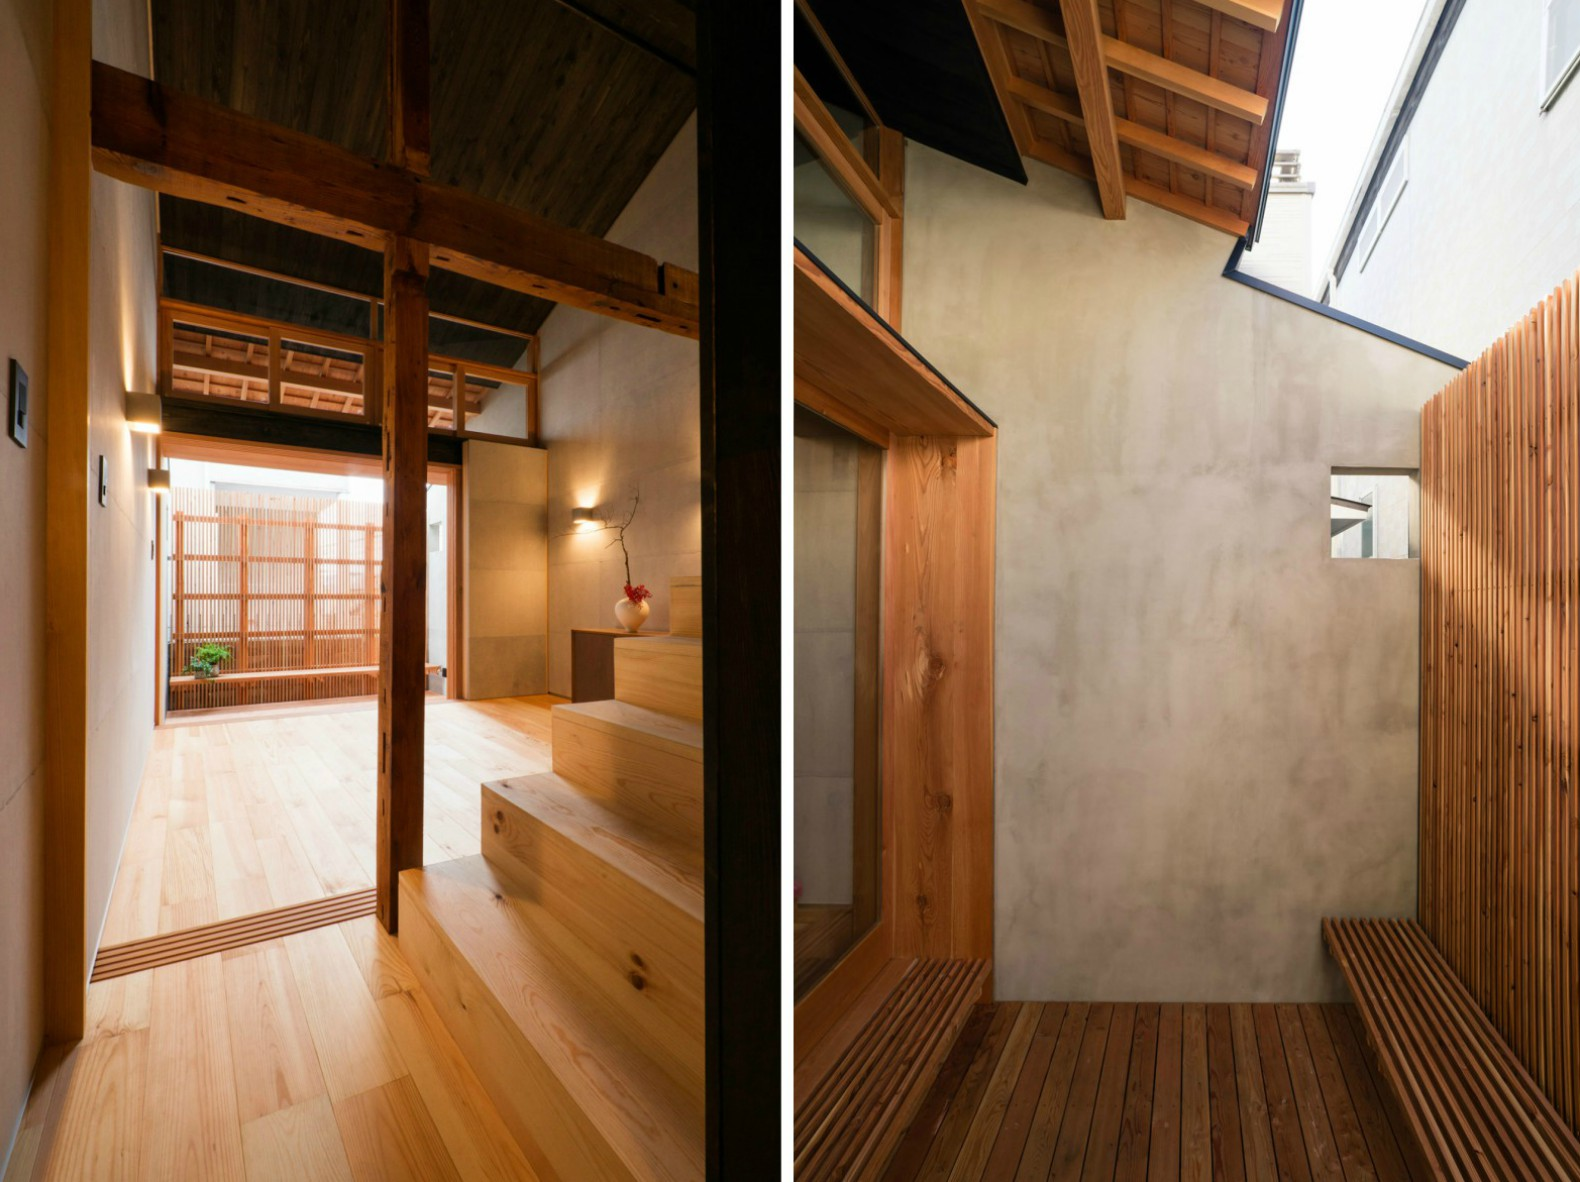 Post War Home In Kyoto Brilliantly Renovated To Blend Modernity With - Architecture-design-in-kyoto-japan